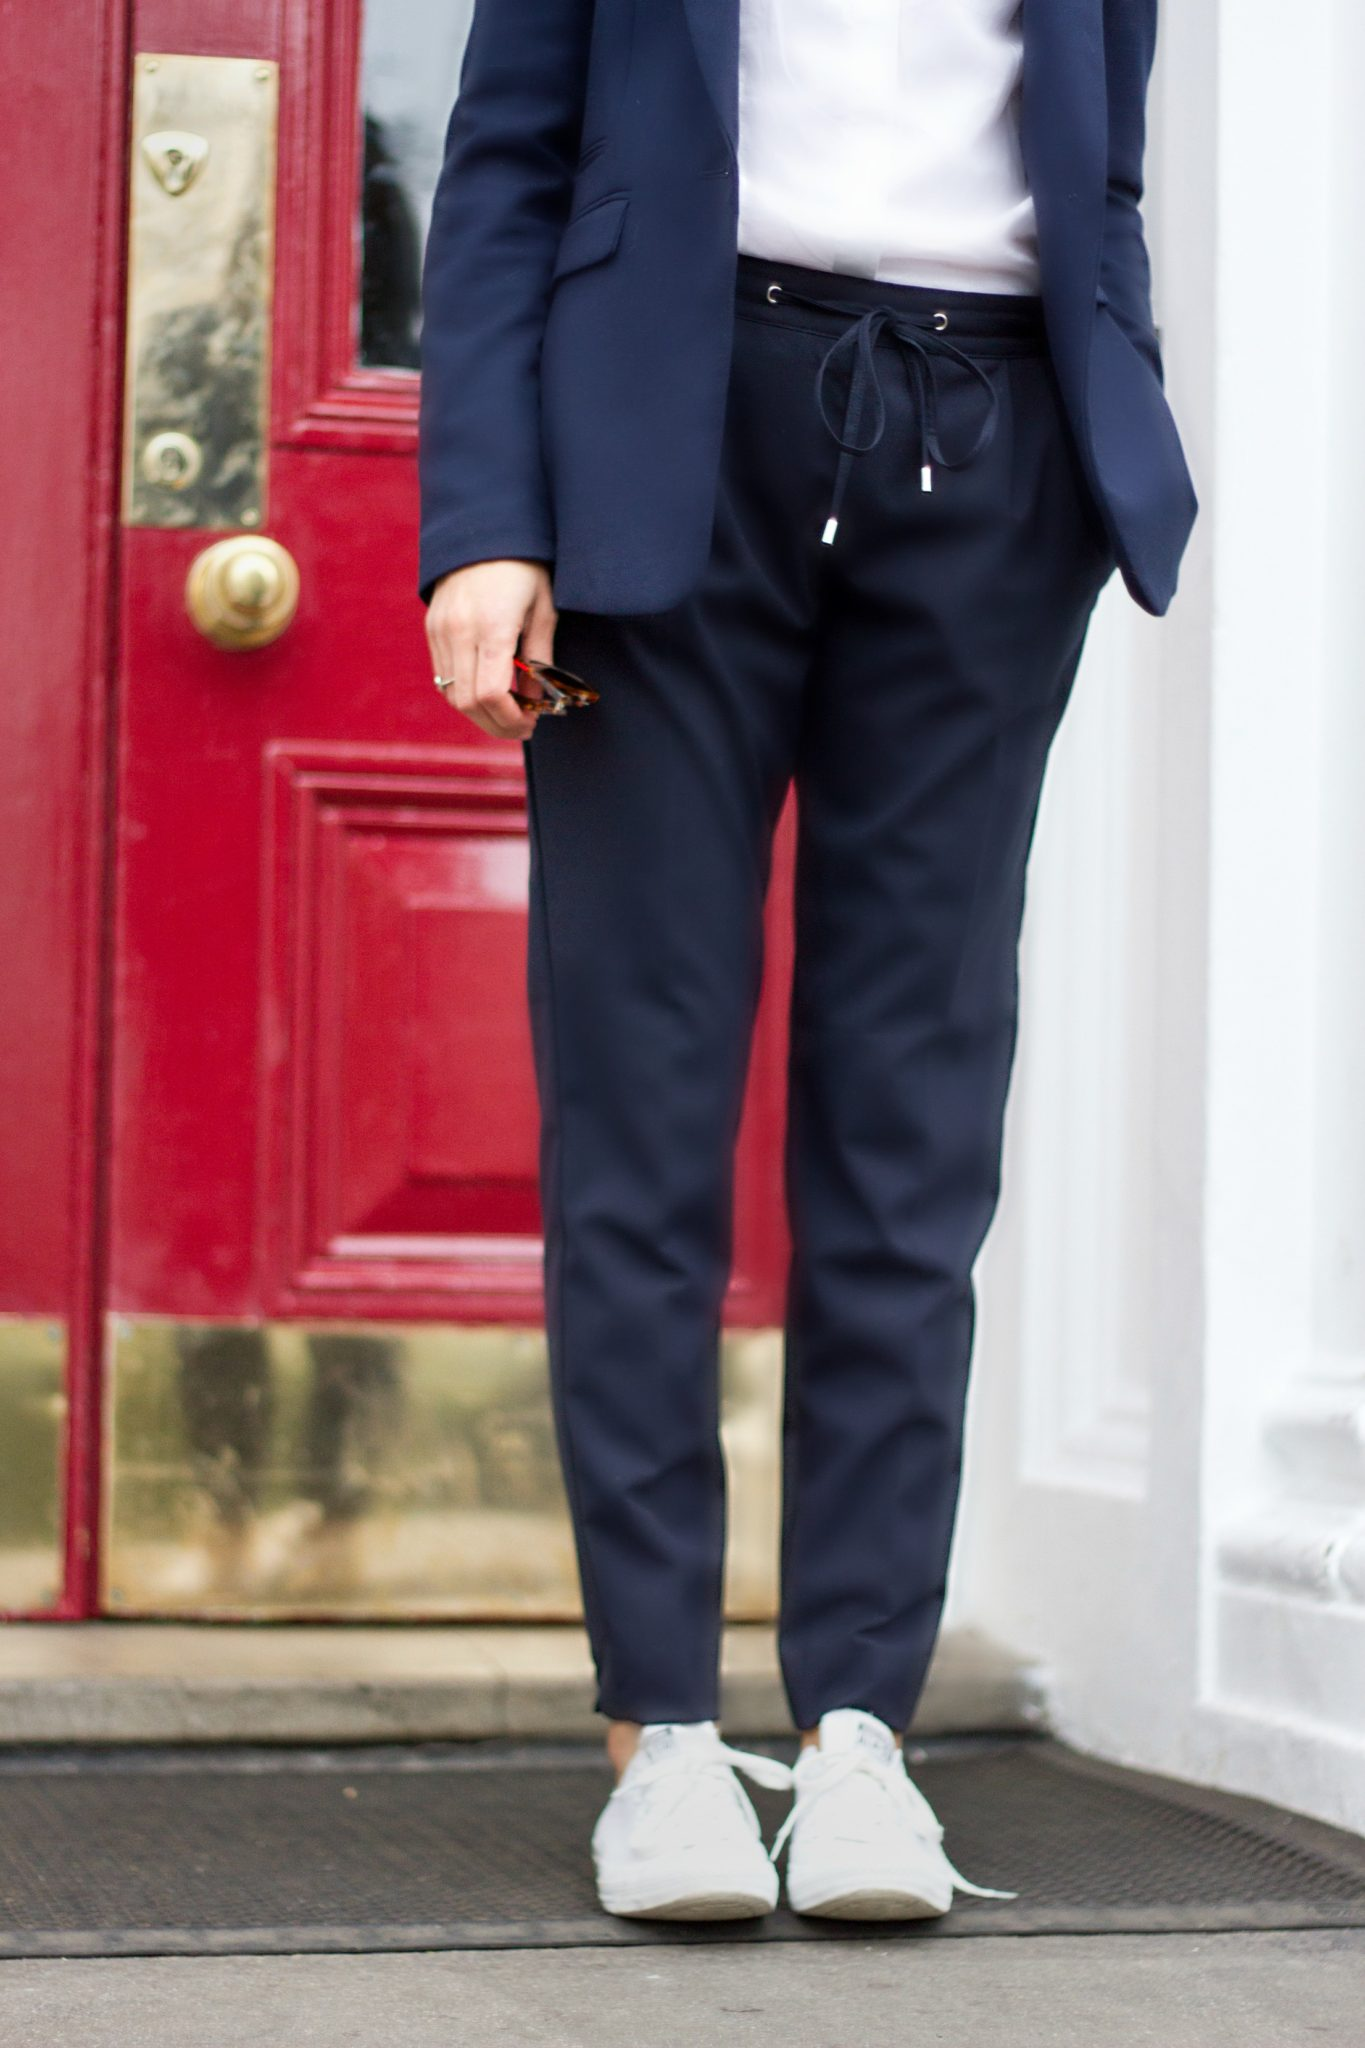 Corporate_Style_Story_Navy_Drawstring_Trousers_White_Shirt_Navy_Blazer_Just_Legs_Outside_Red_Door_2212_3318